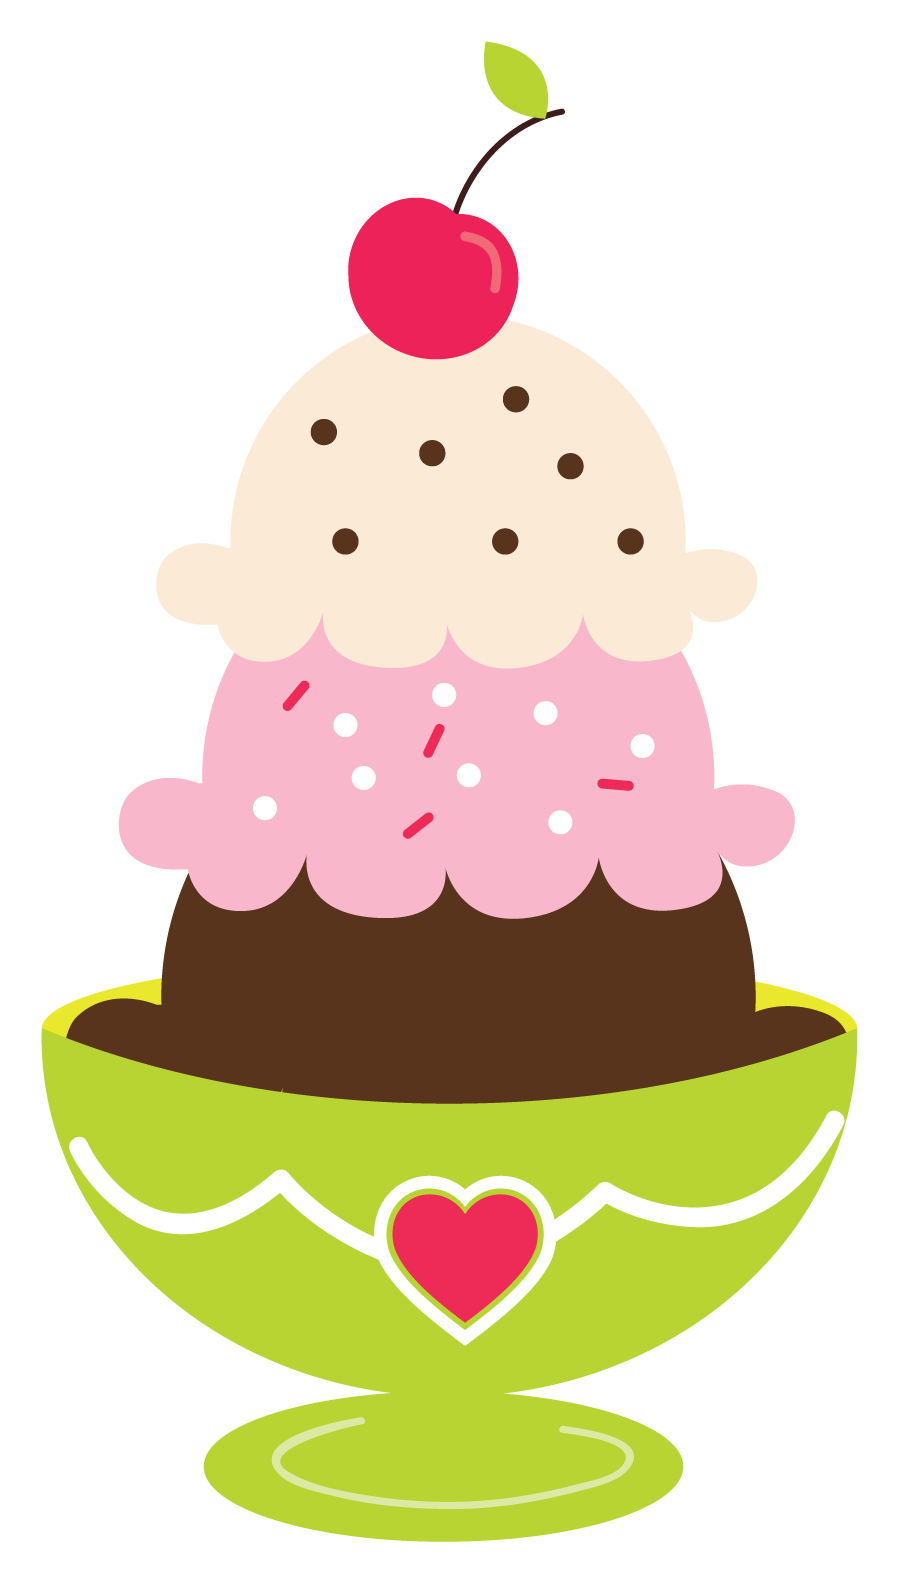 We All Scream For Ice Cream C - Ice Cream Sundae Clipart